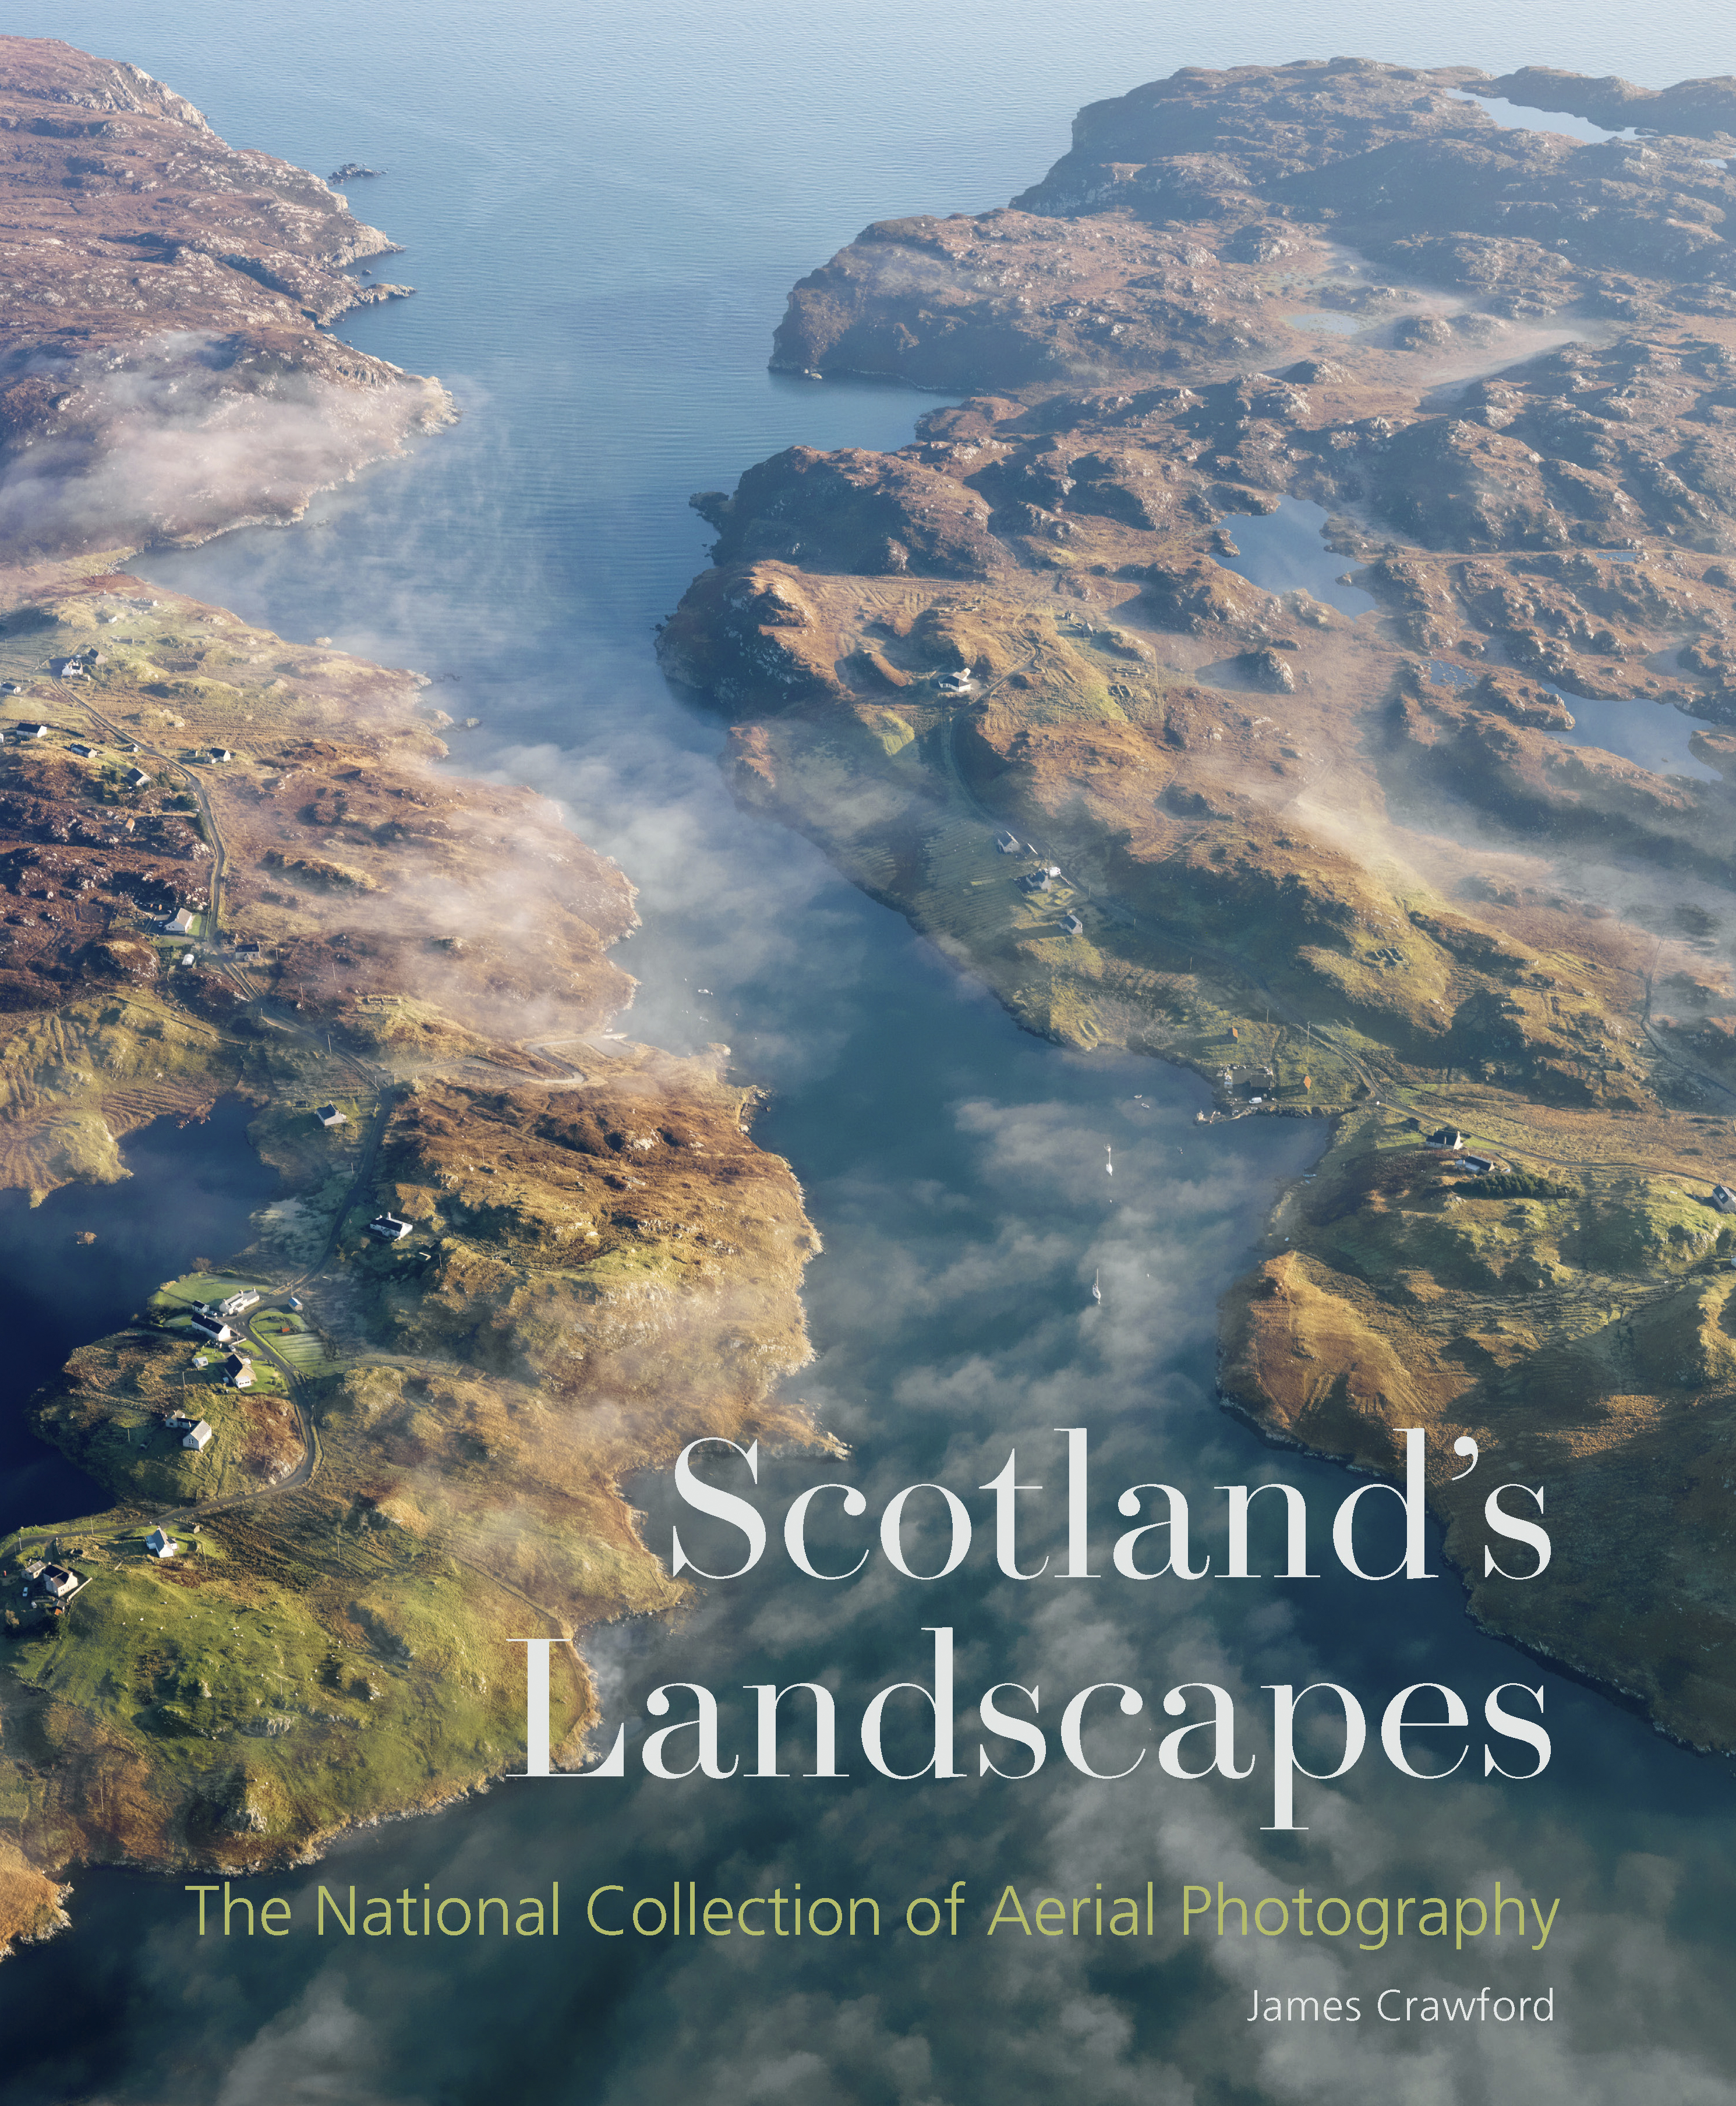 Scotland's Landscapes: Coastlines